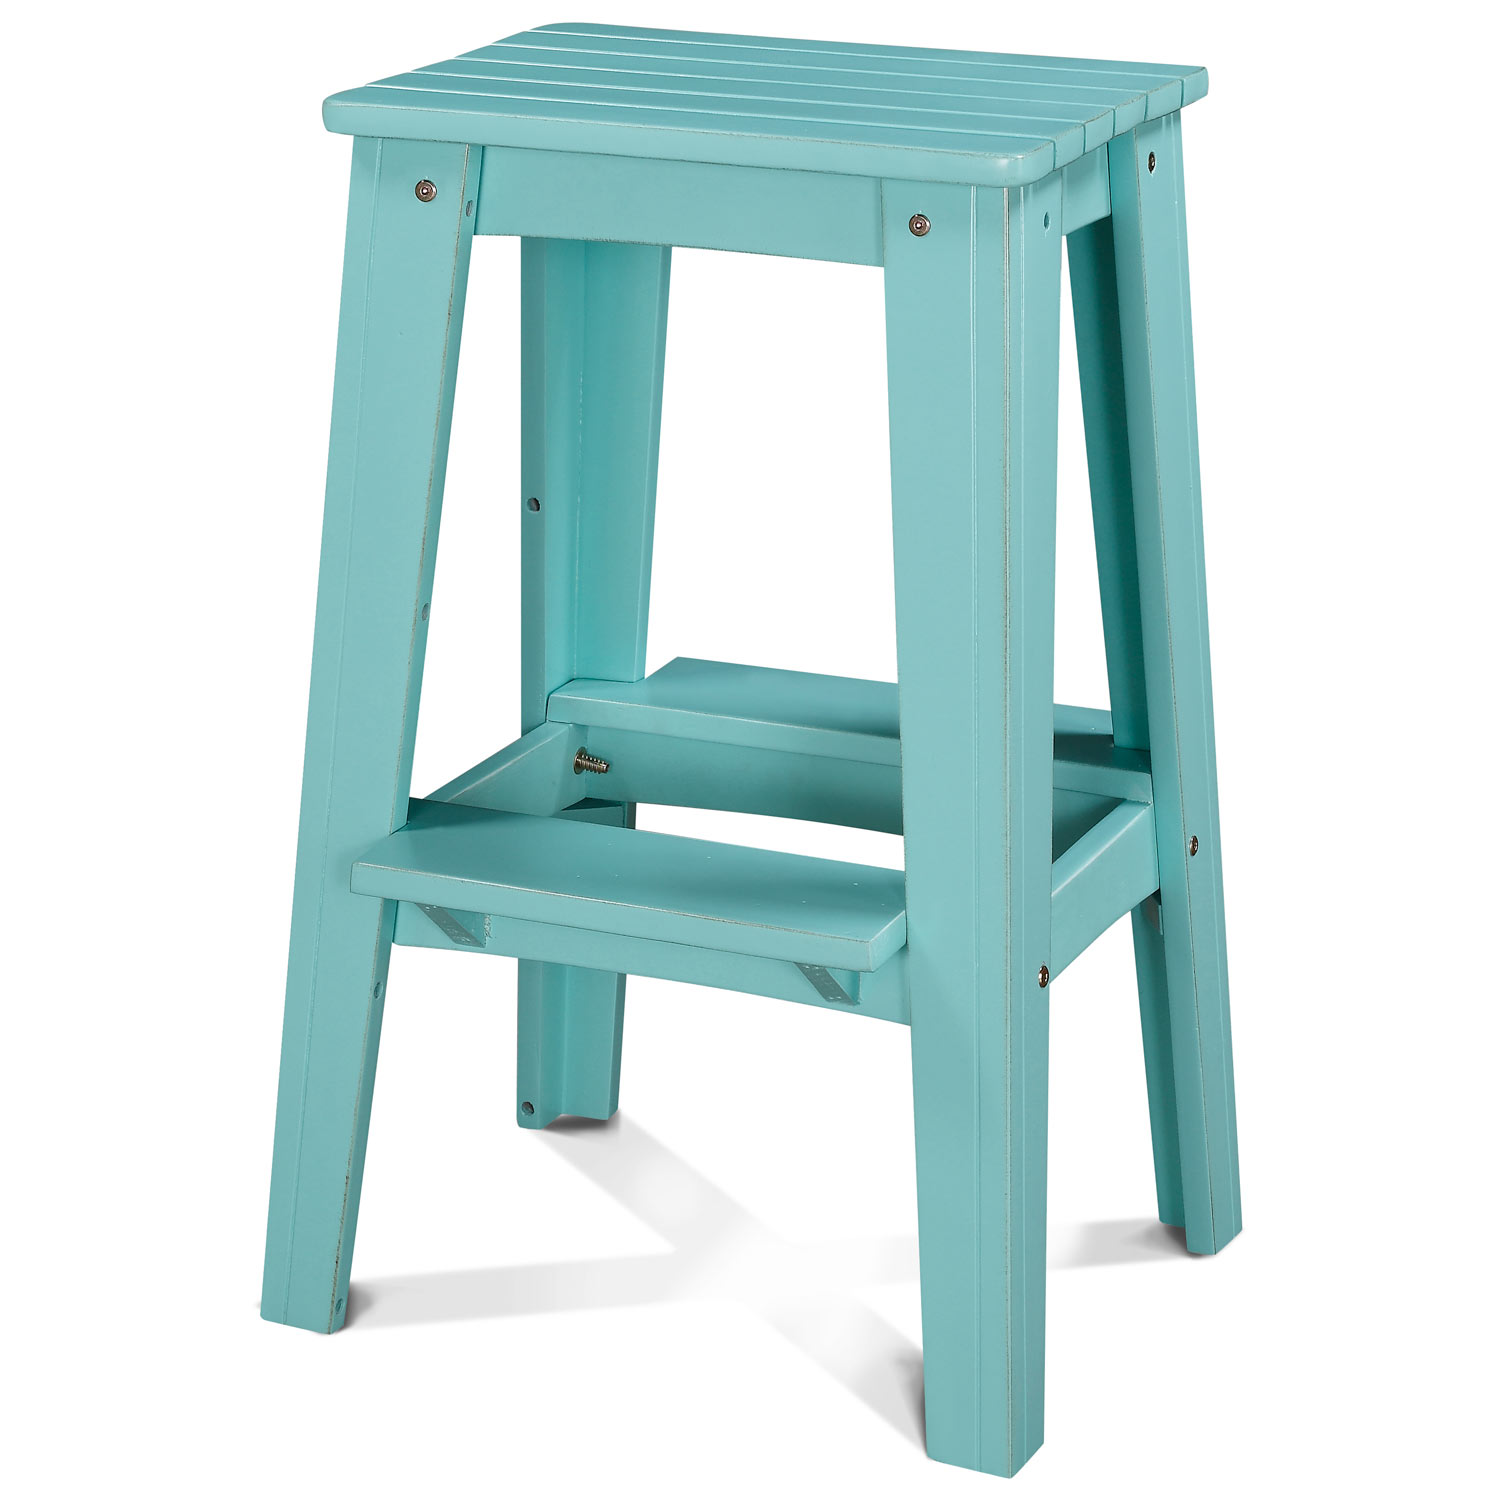 30 backless outdoor patio bar stool rustic caribbean dream turquoise dcg stores Rustic outdoor bar stools